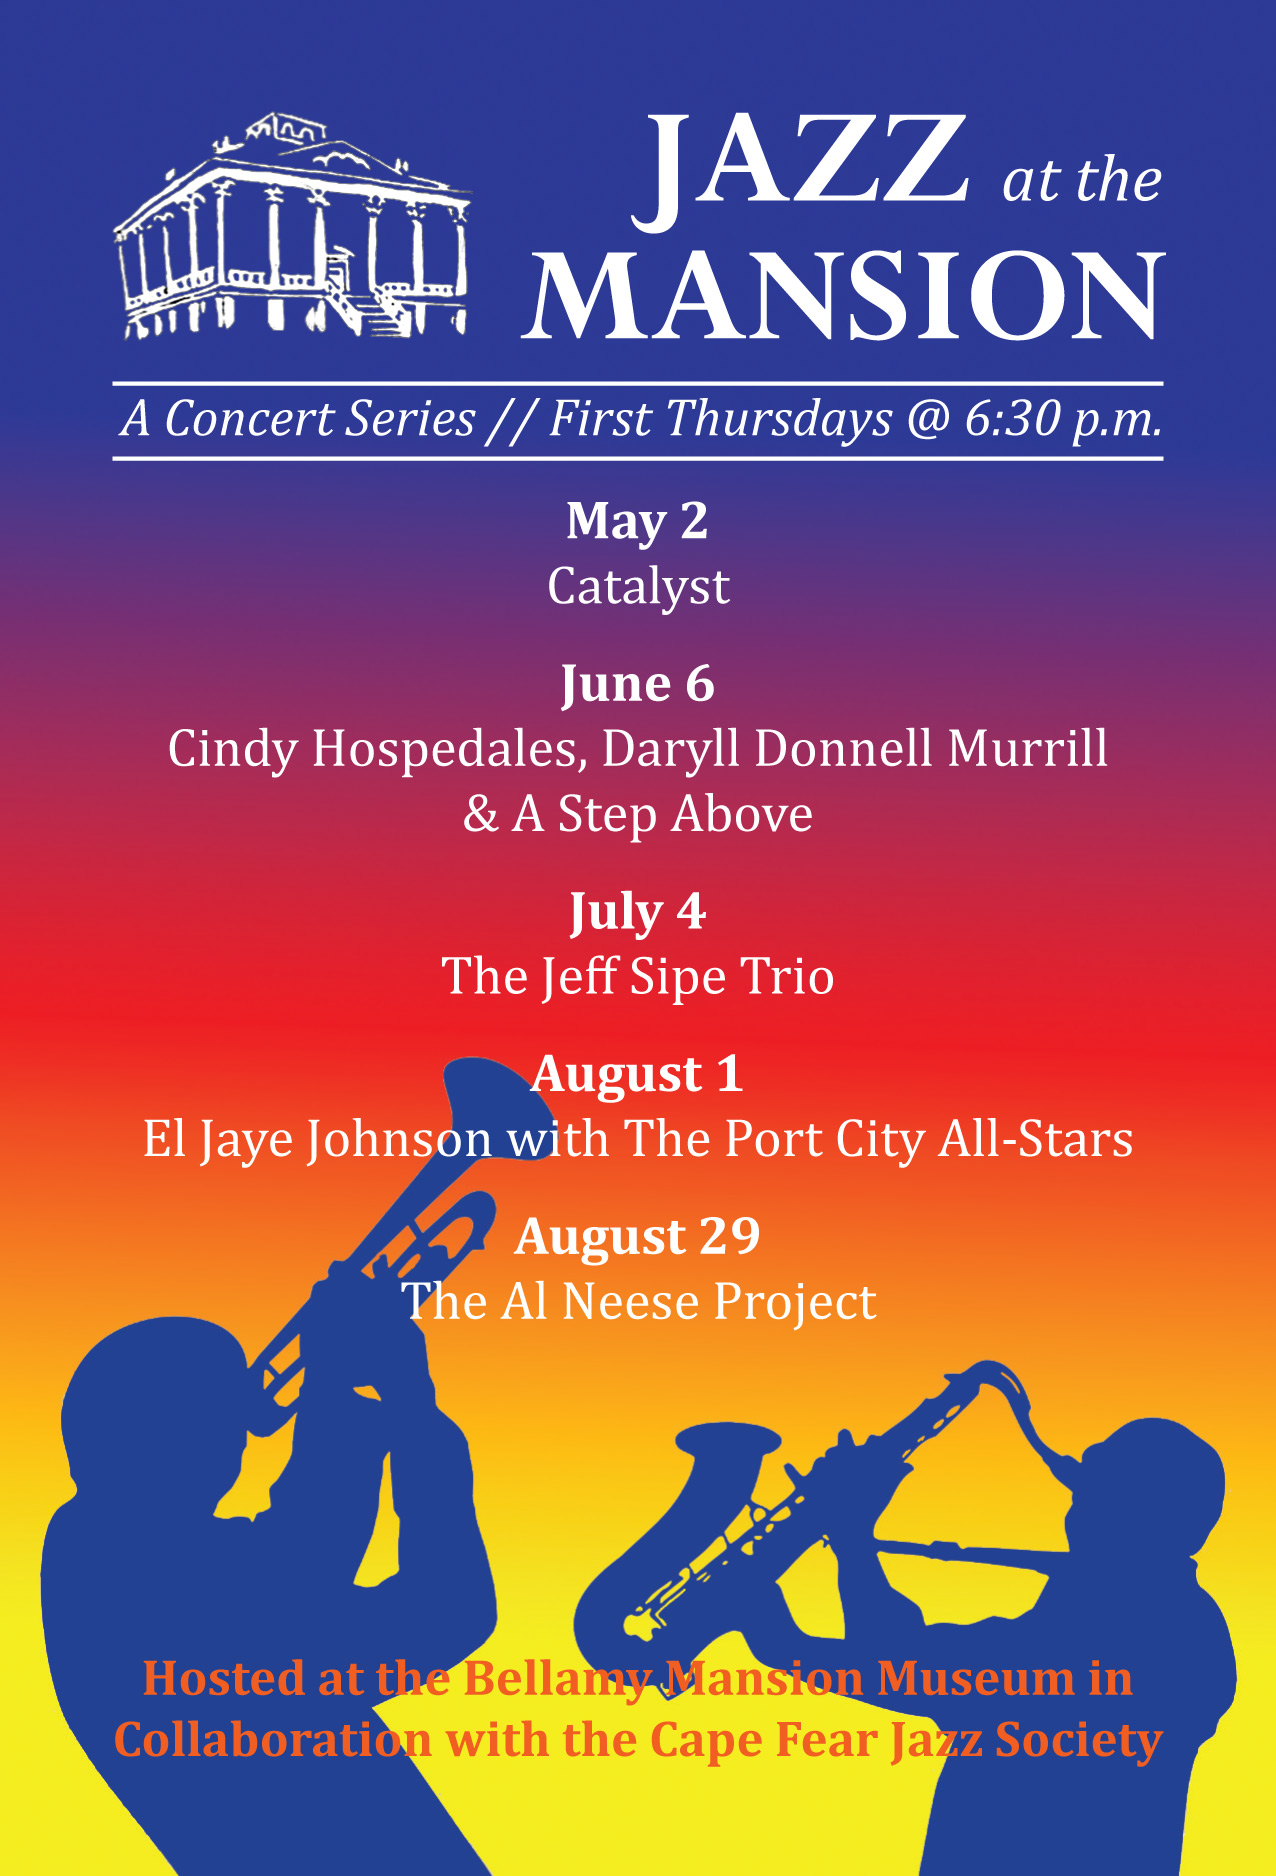 JAZZ AT THE MANSION